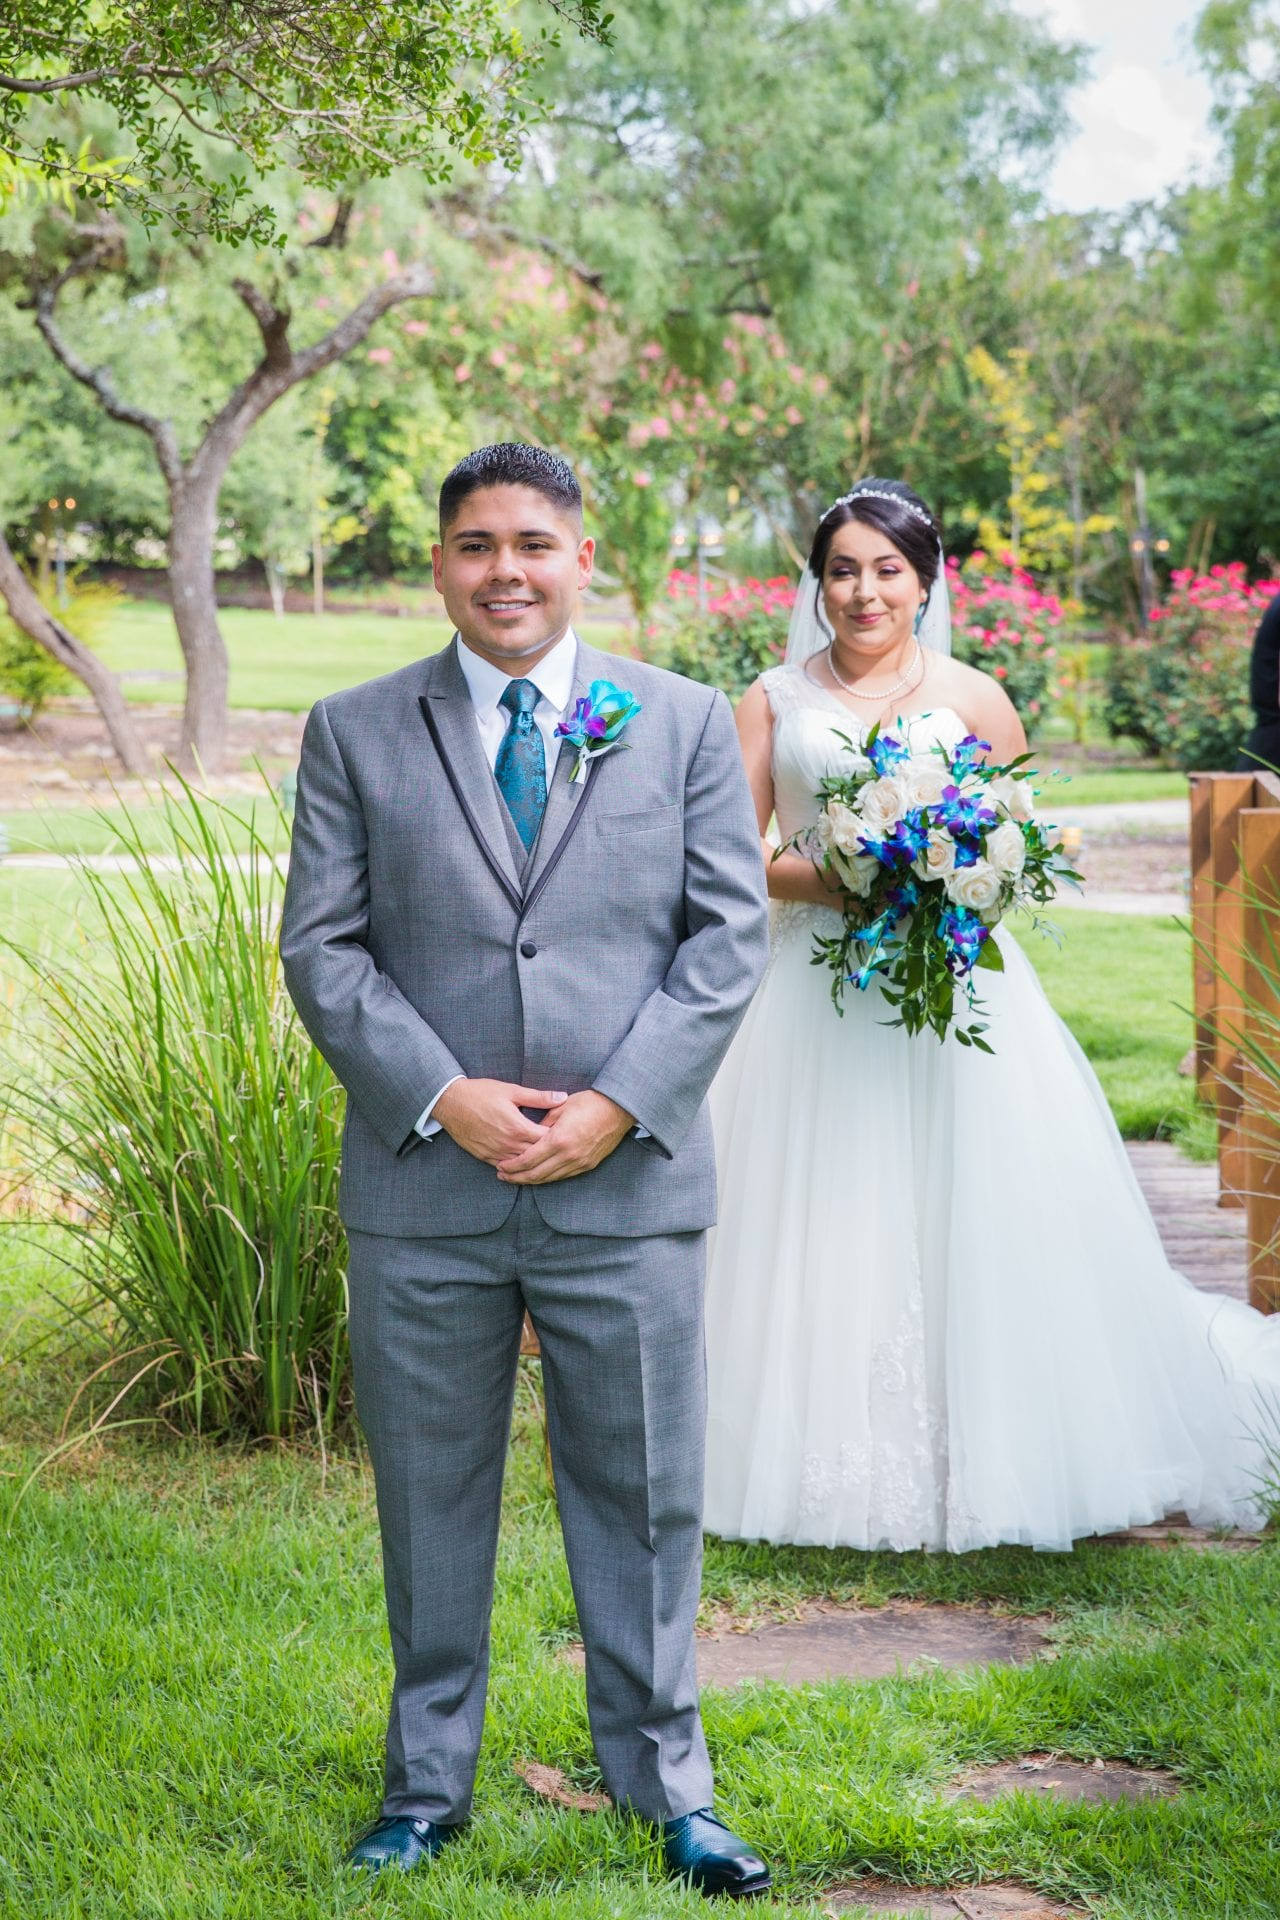 Alex and Adrien Wedding at The Gardens at Old Town 1st look walk up